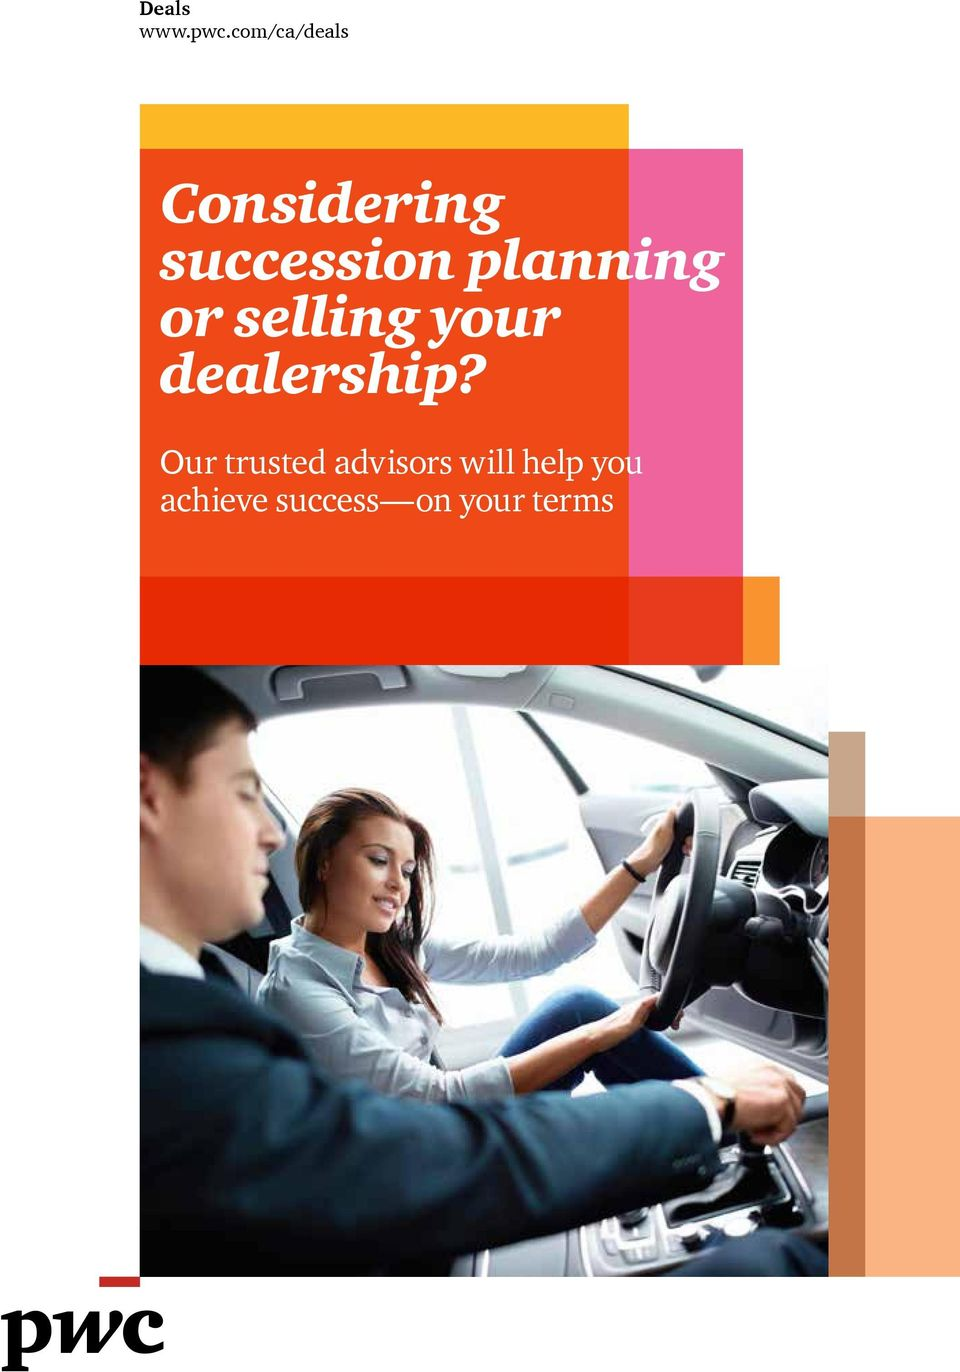 planning or selling your dealership?